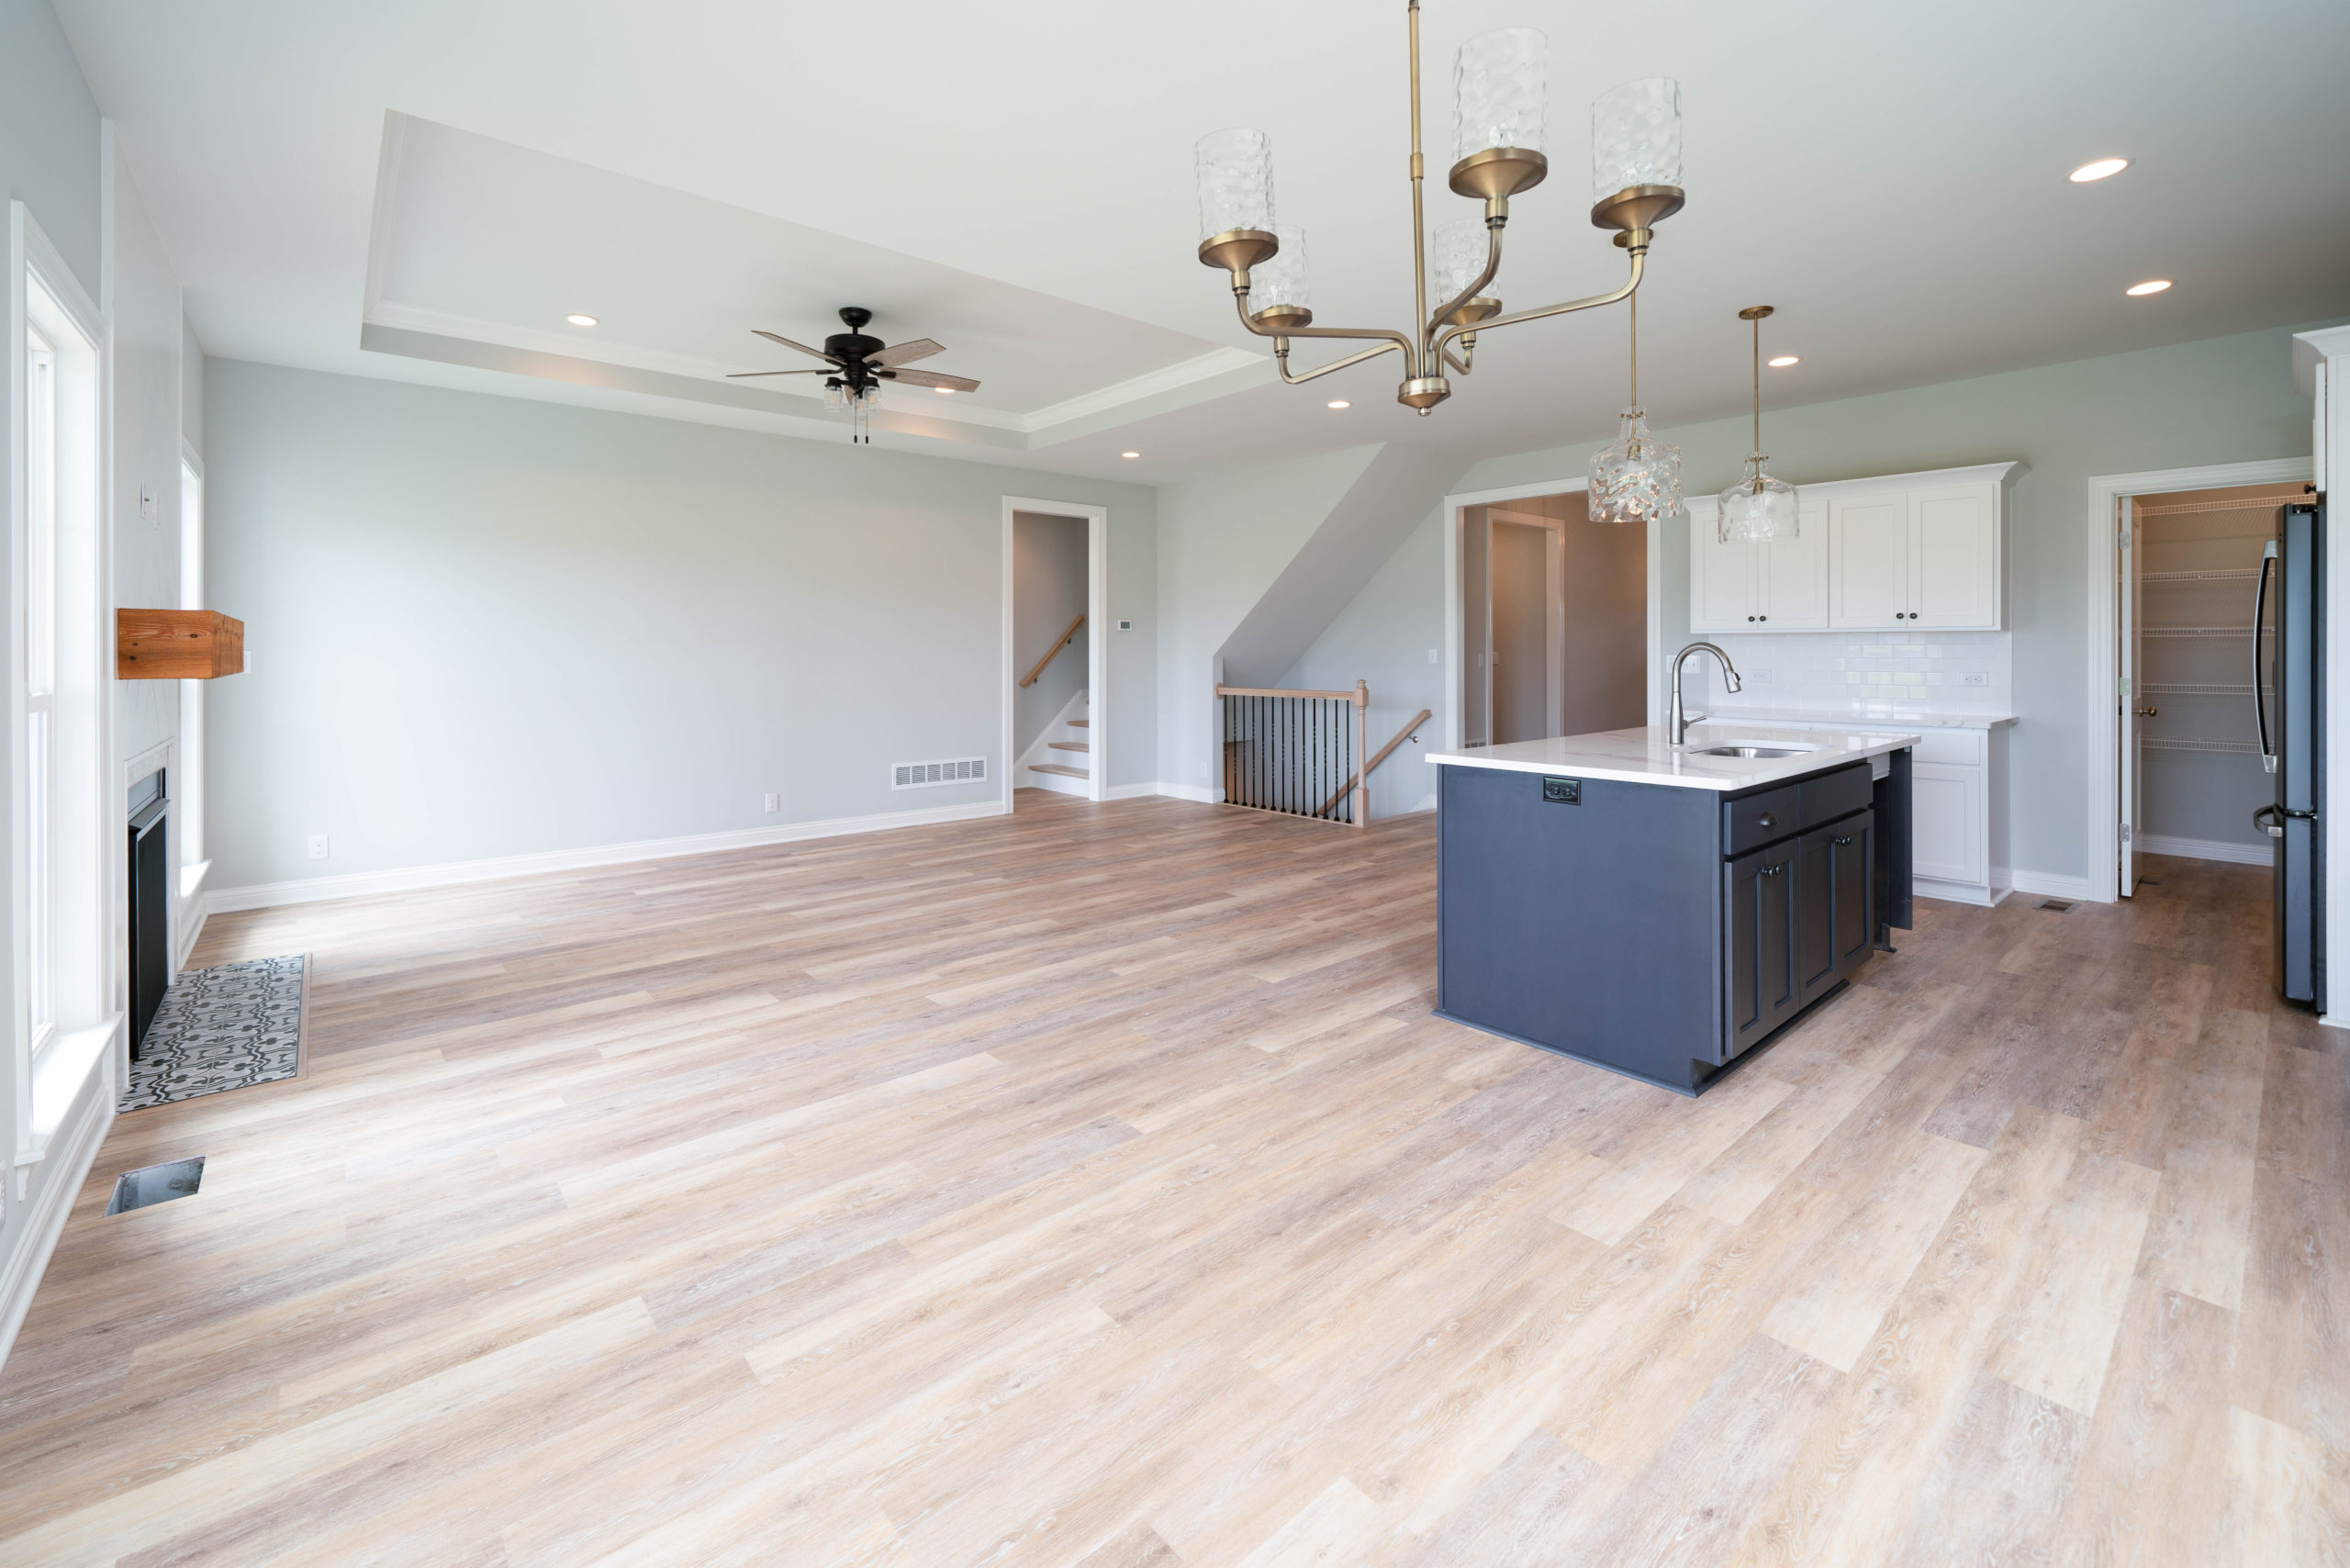 open concept living room and kitchen with light hardwood floors